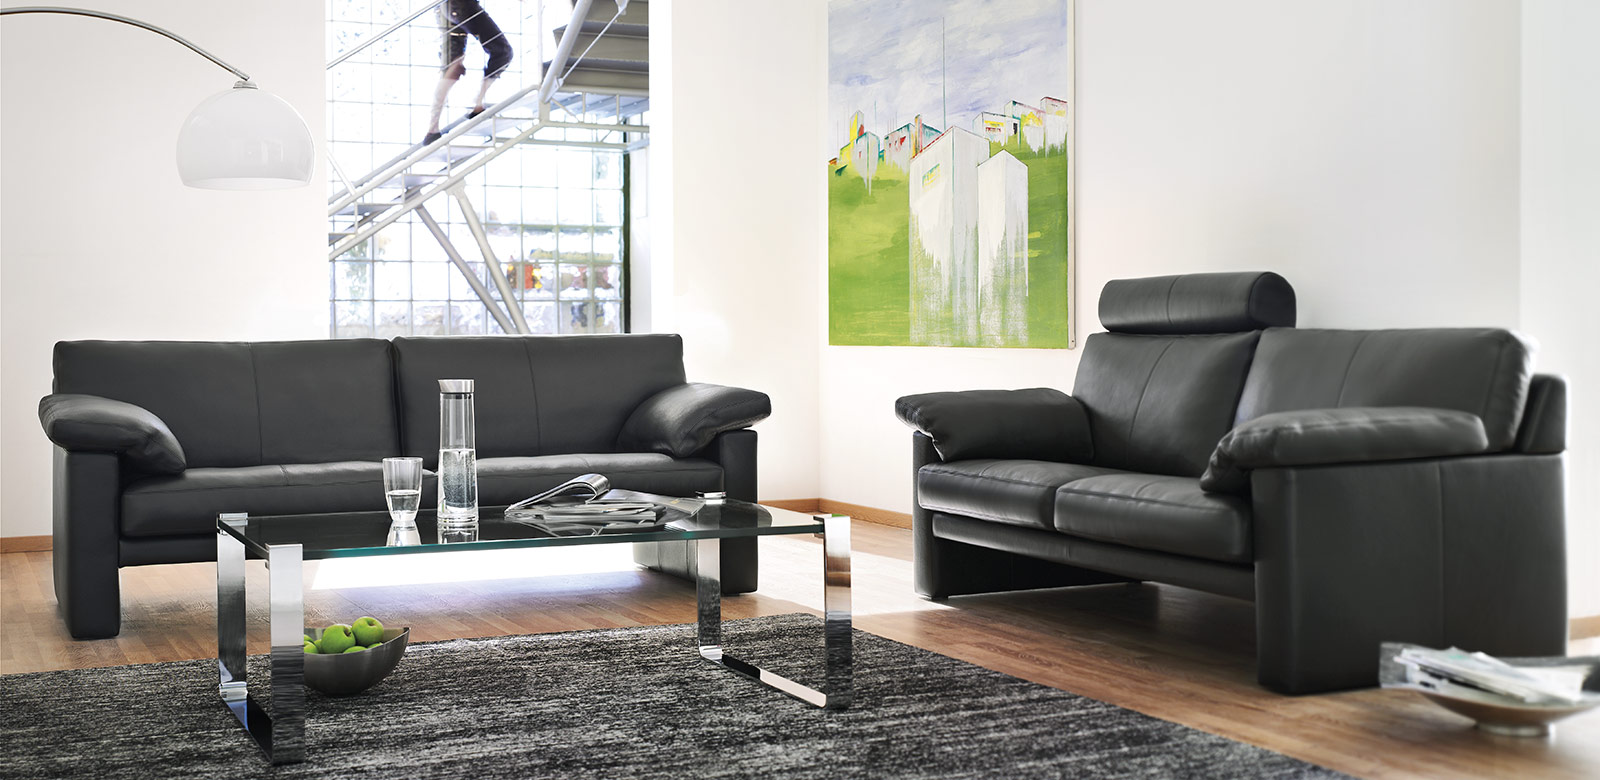 Luxus Ledercouch CL 300